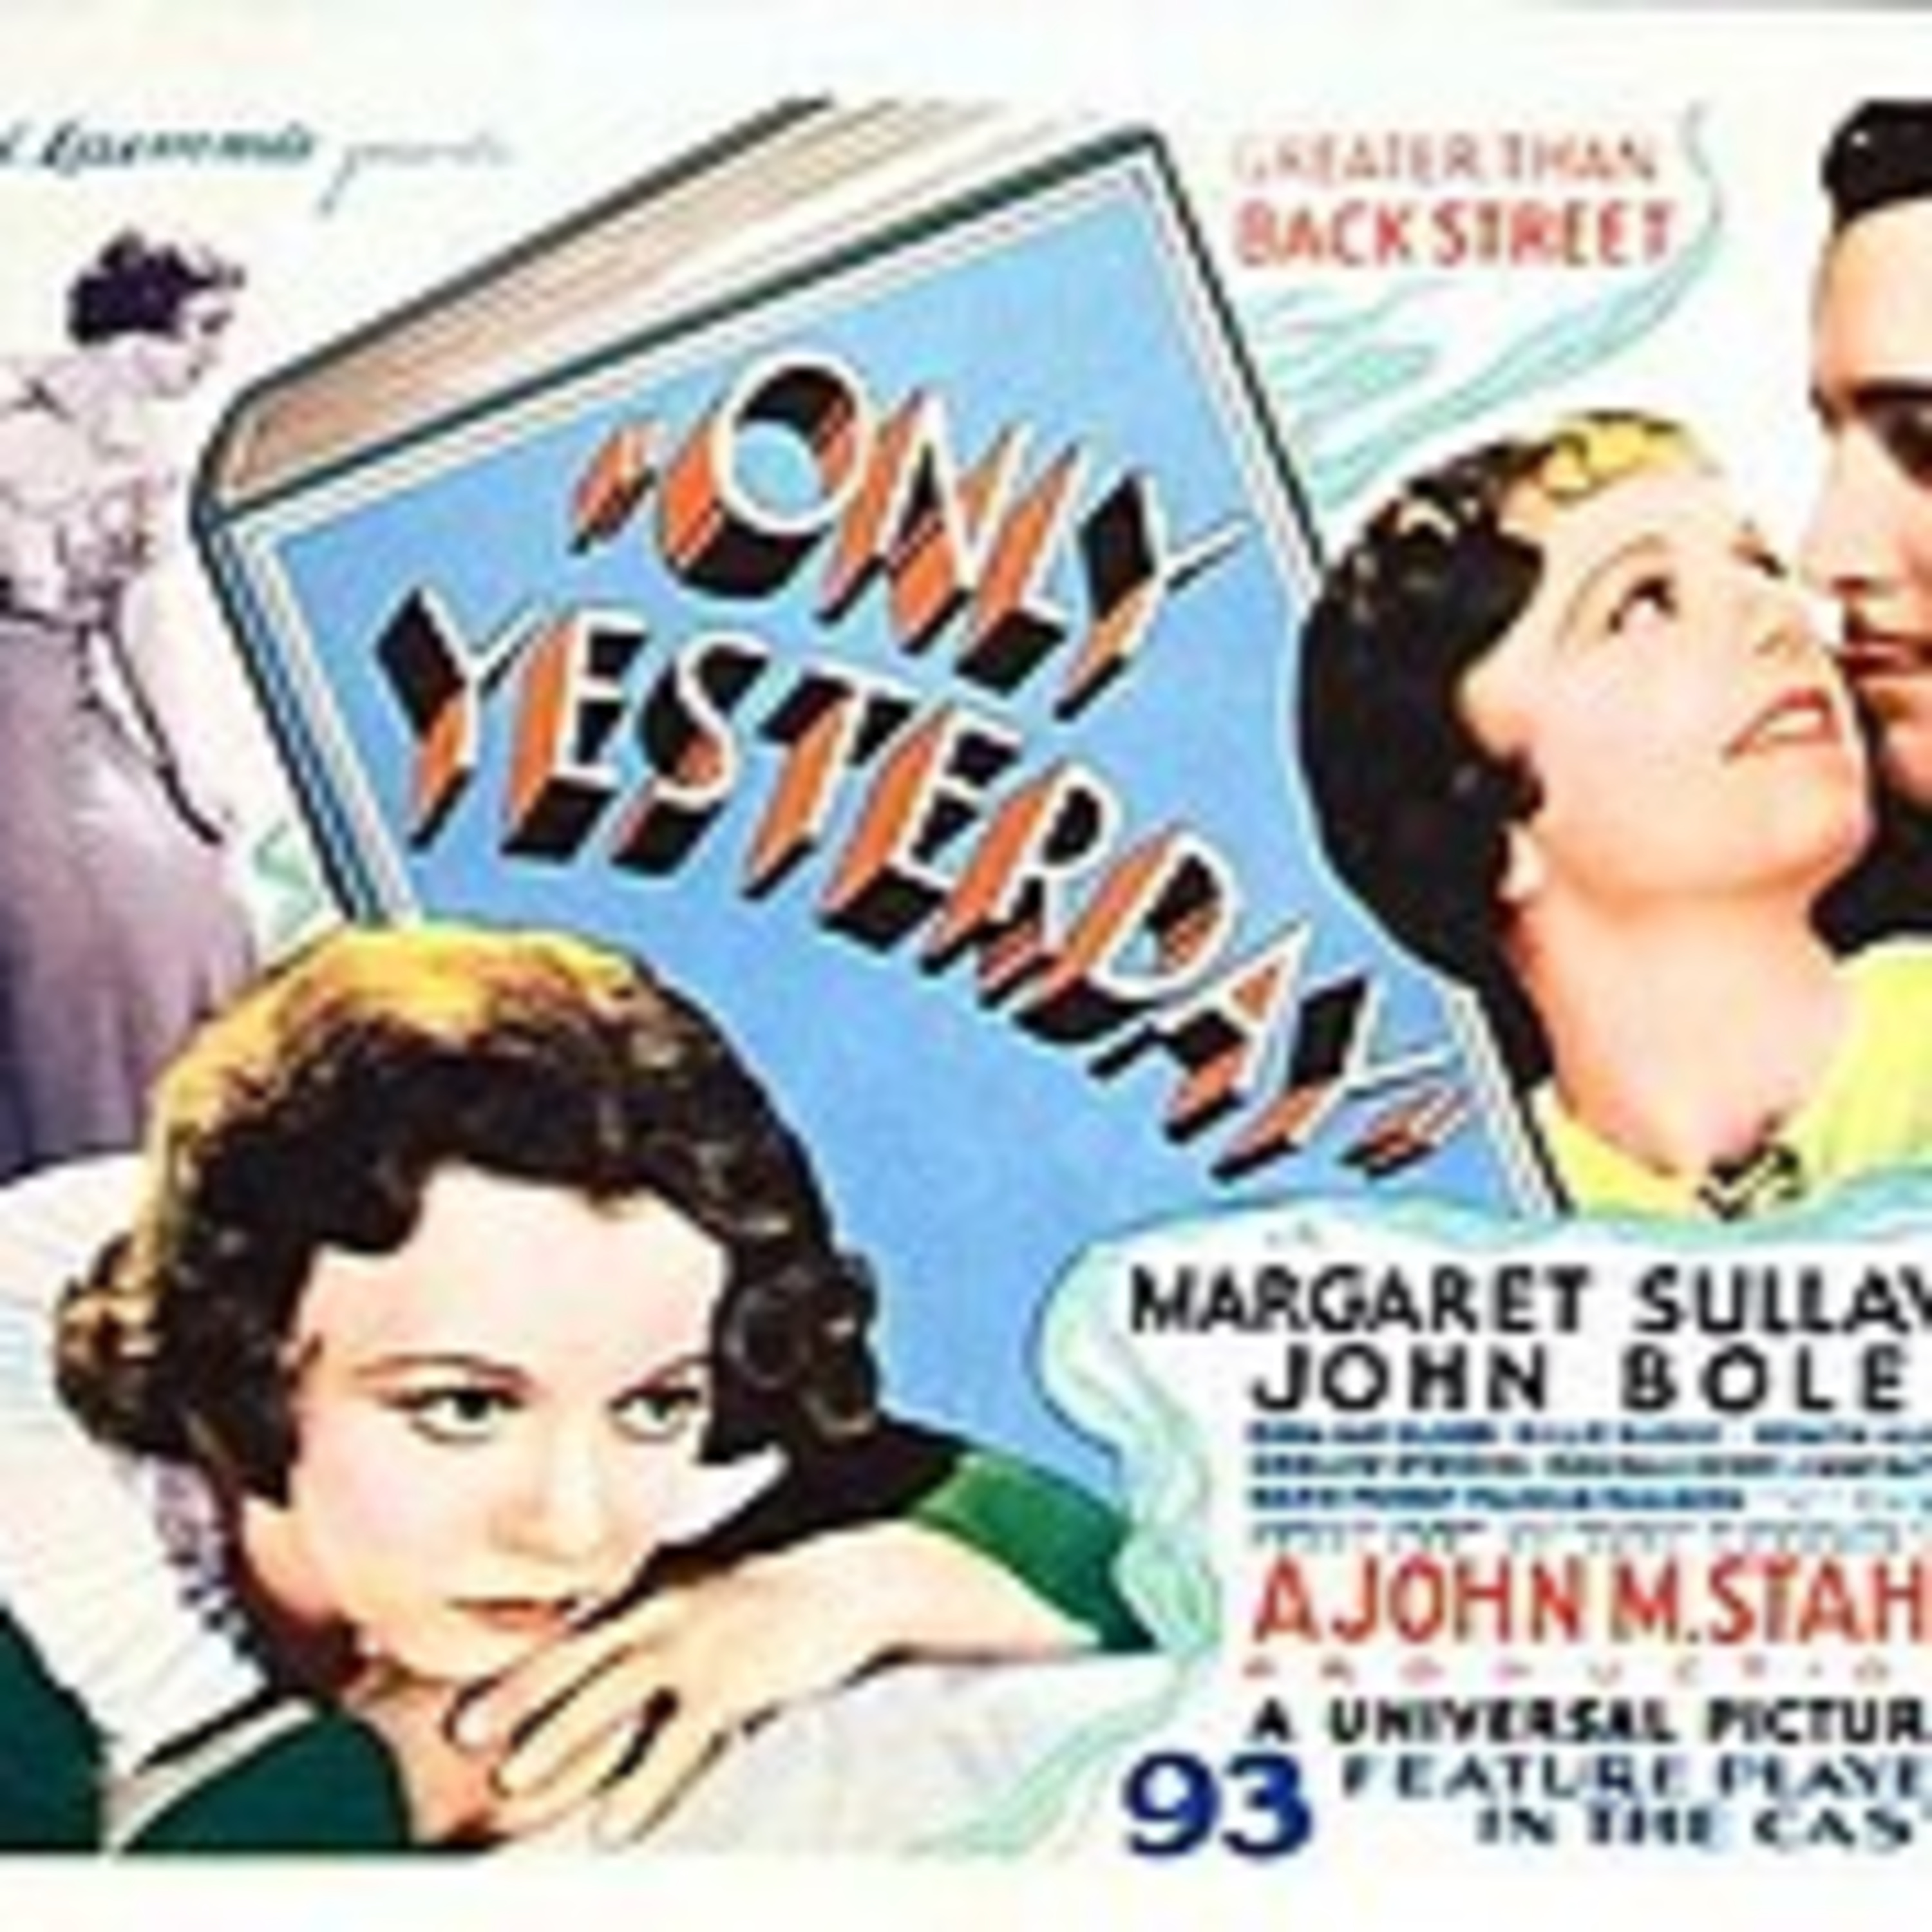 Only Yesterday - Barbara Stanwyck & George Brent - All-Star Radio Dramas of Classic Films - Lux Radio Theater